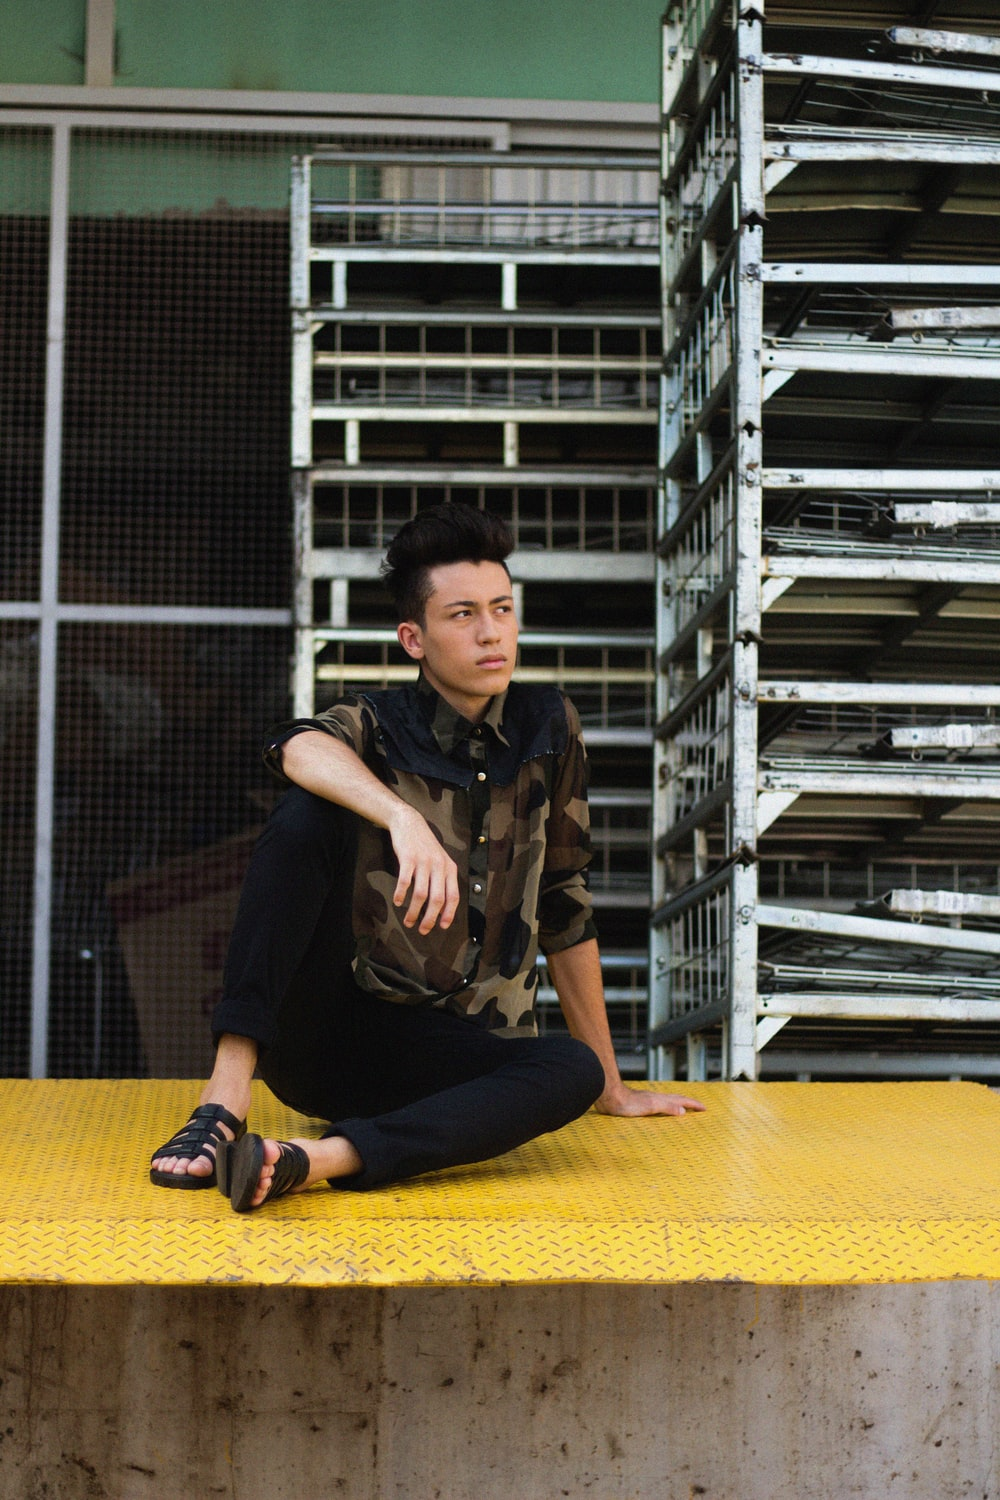 man sitting on yellow surface looking up